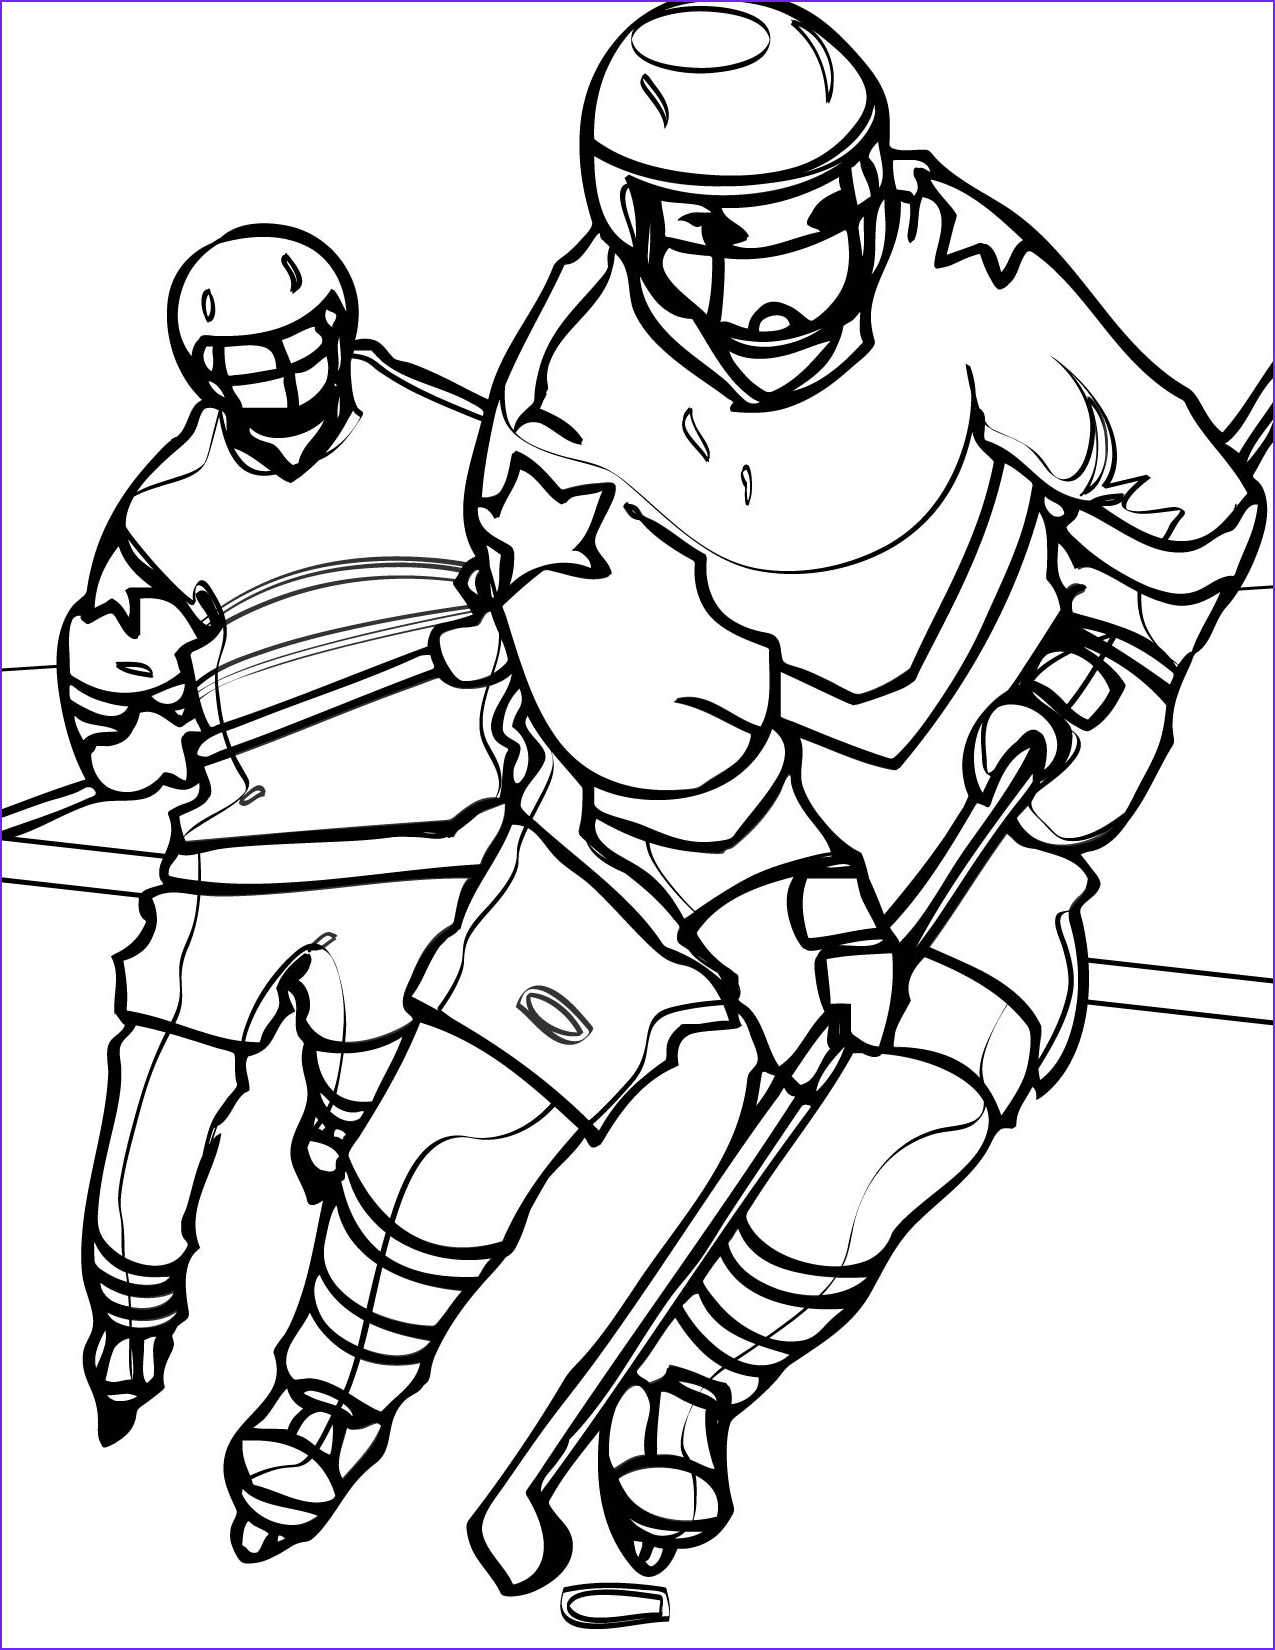 Sports Coloring Book Best Of Photos Sports Coloring Pages Hockey Coloringstar